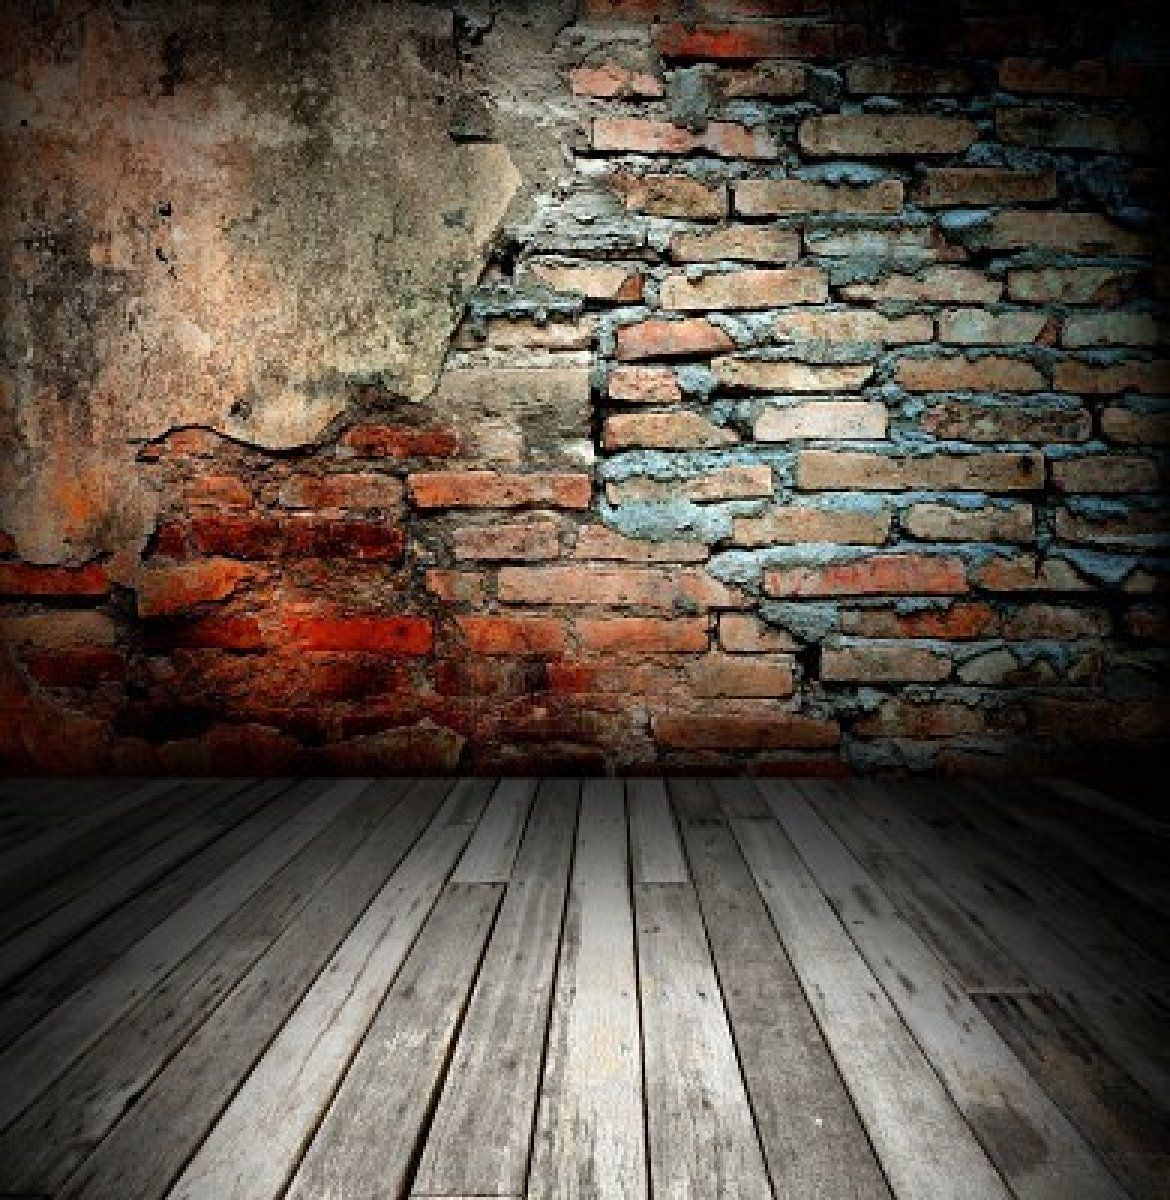 Wallpaper Of Wall: Beautiful Old Room With Brick Wall Texture Backgrounds